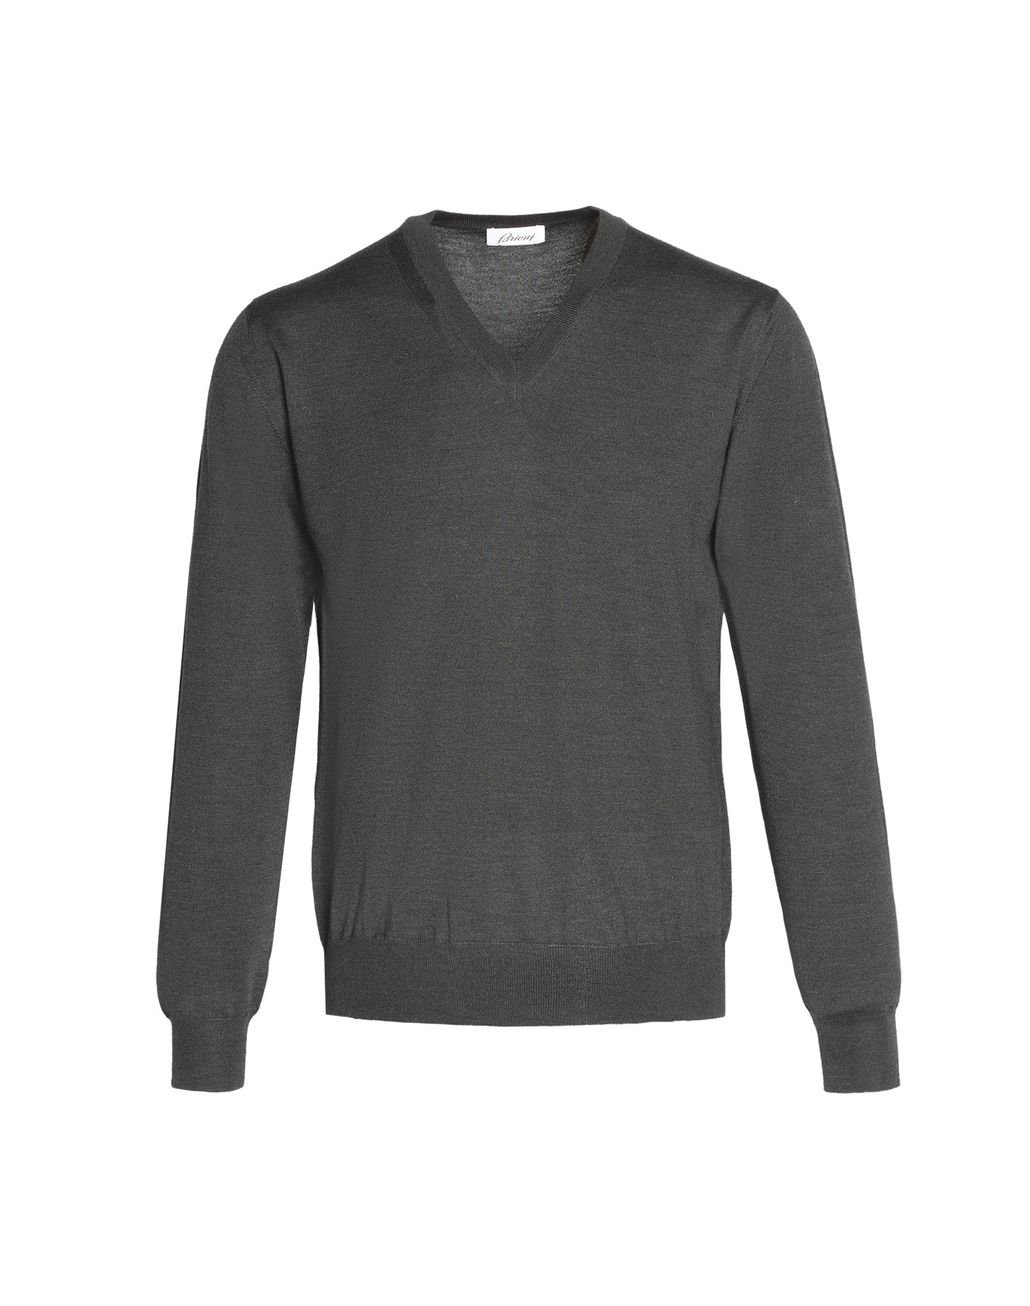 BRIONI  'Essential' Gray V-Neck Sweater Knitwear Man f